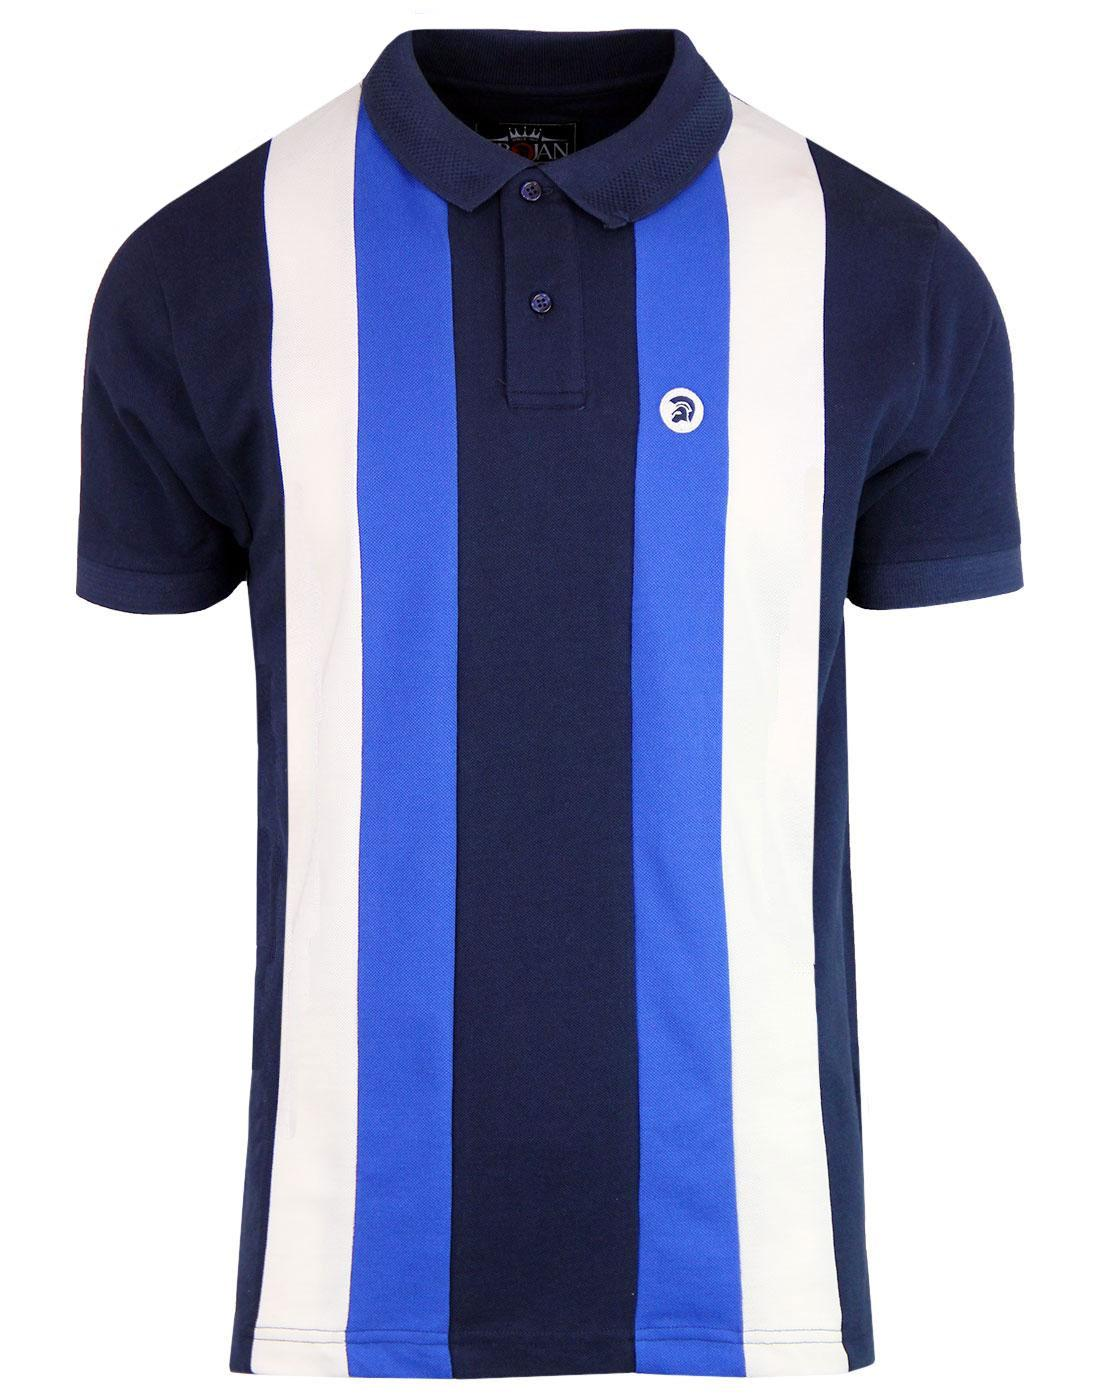 TROJAN RECORDS Retro Mod Stripe Panel Pique Polo